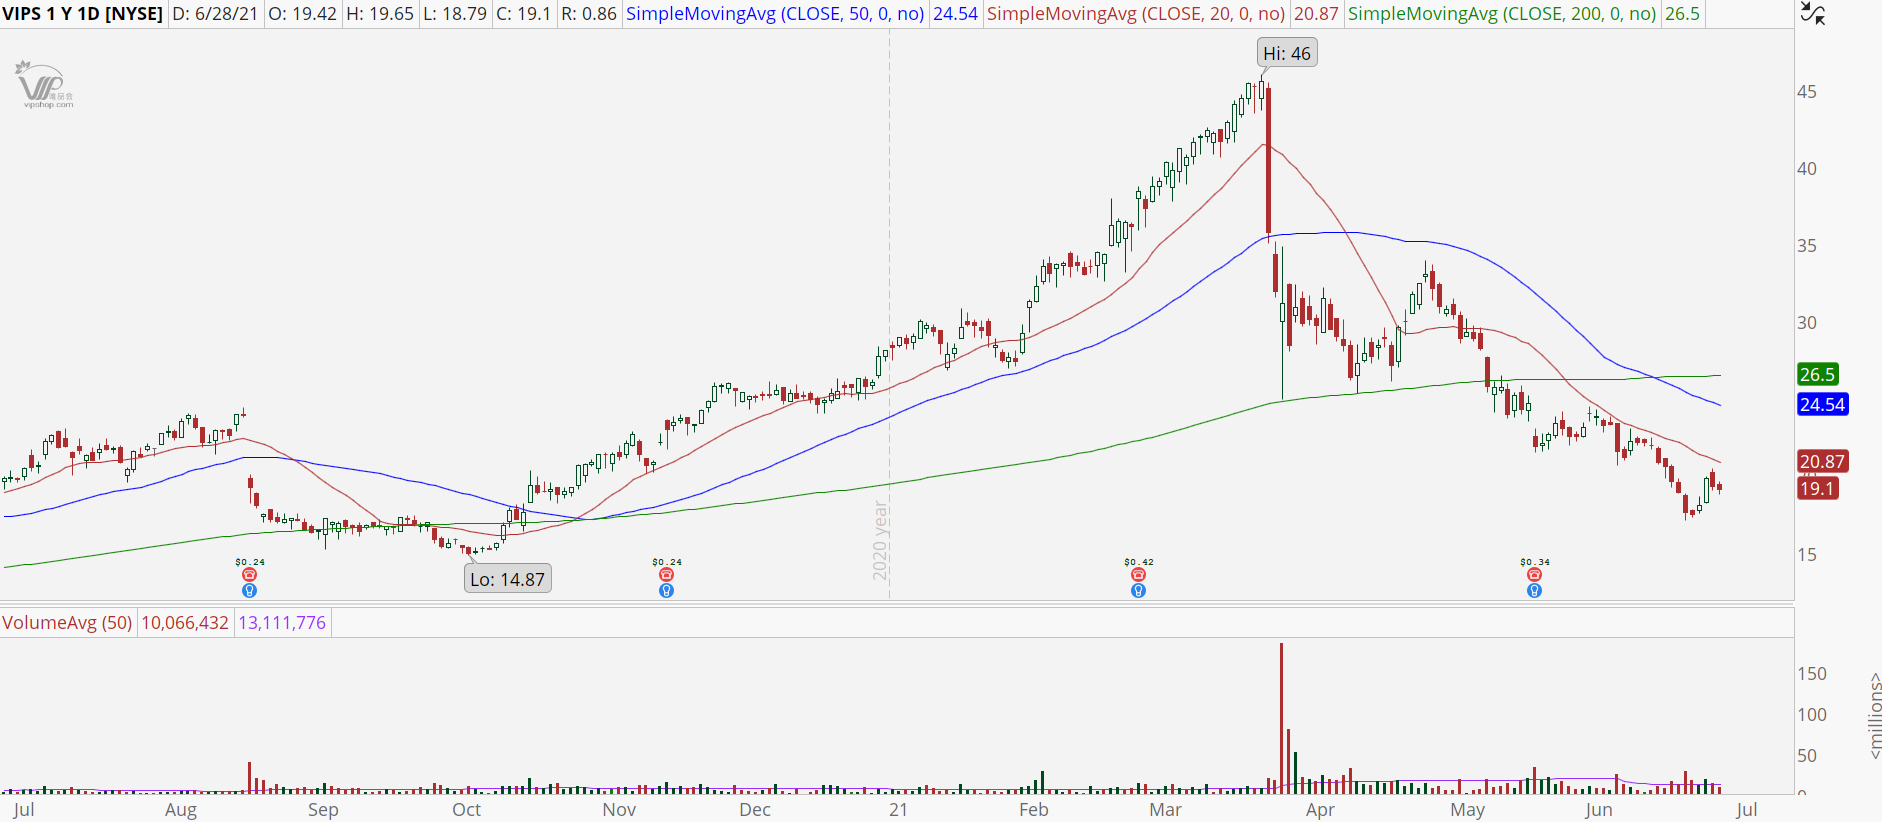 Vipshop Holdings (VIPS) stock chart with bear retracement